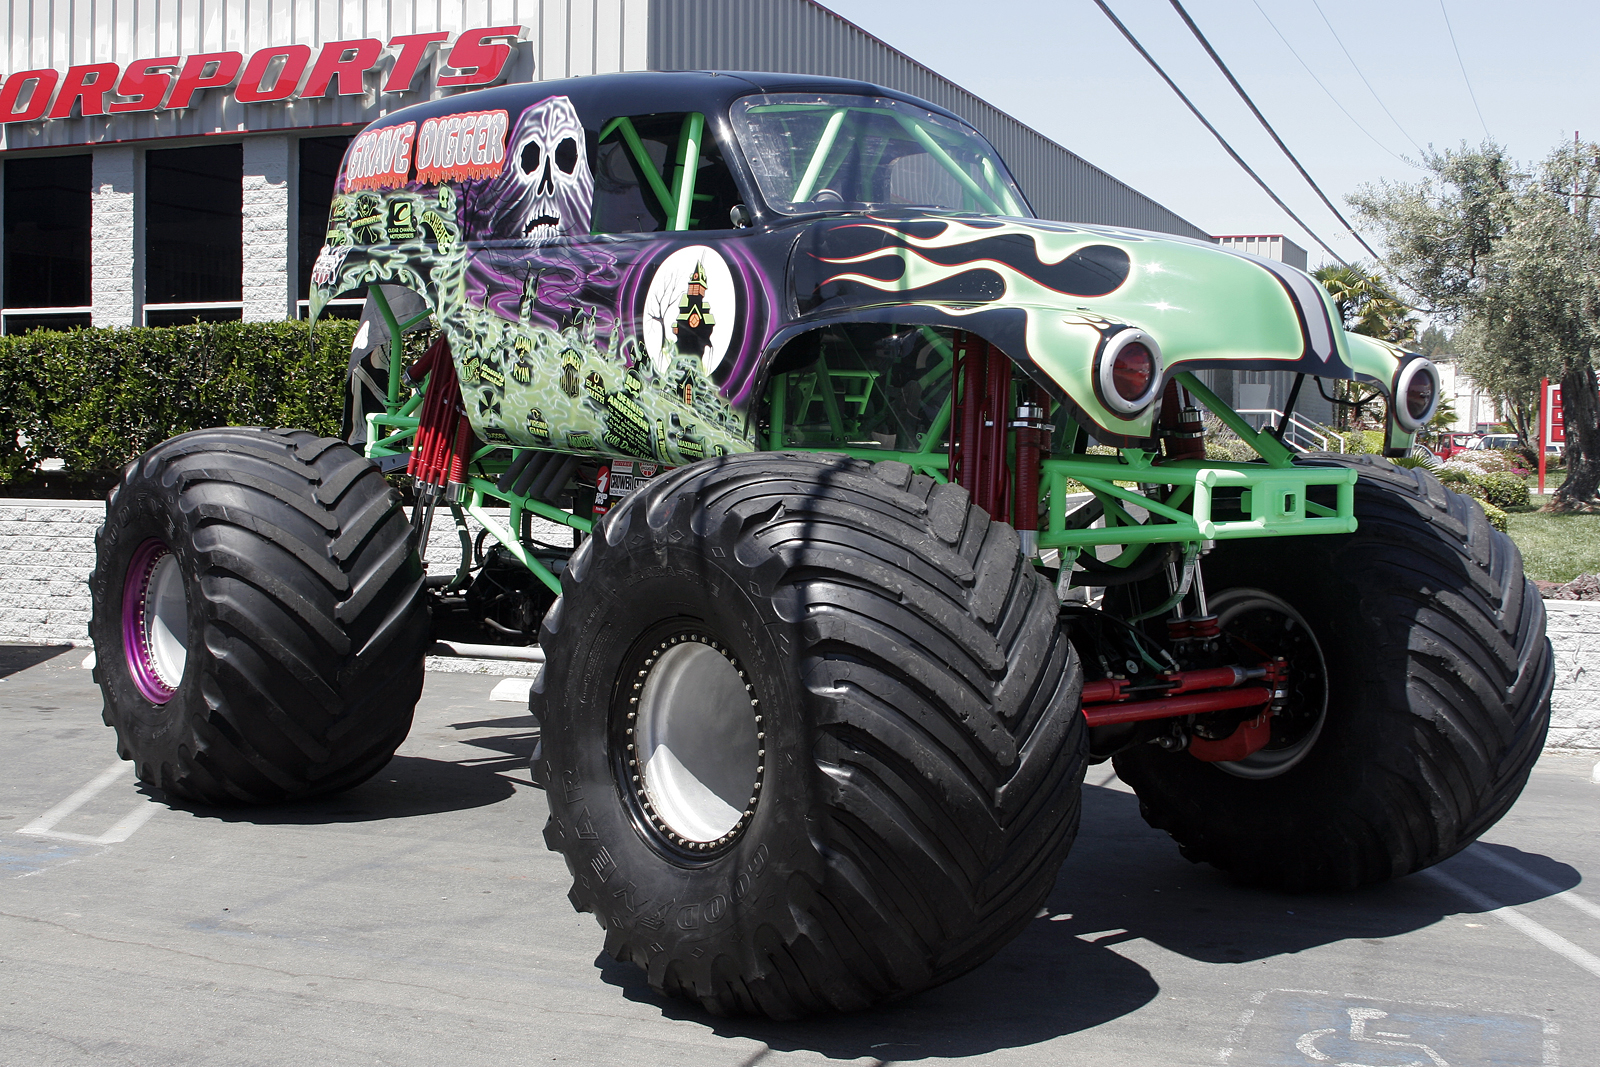 monstertrucks_wallpaper_003_1600_1067.jpg